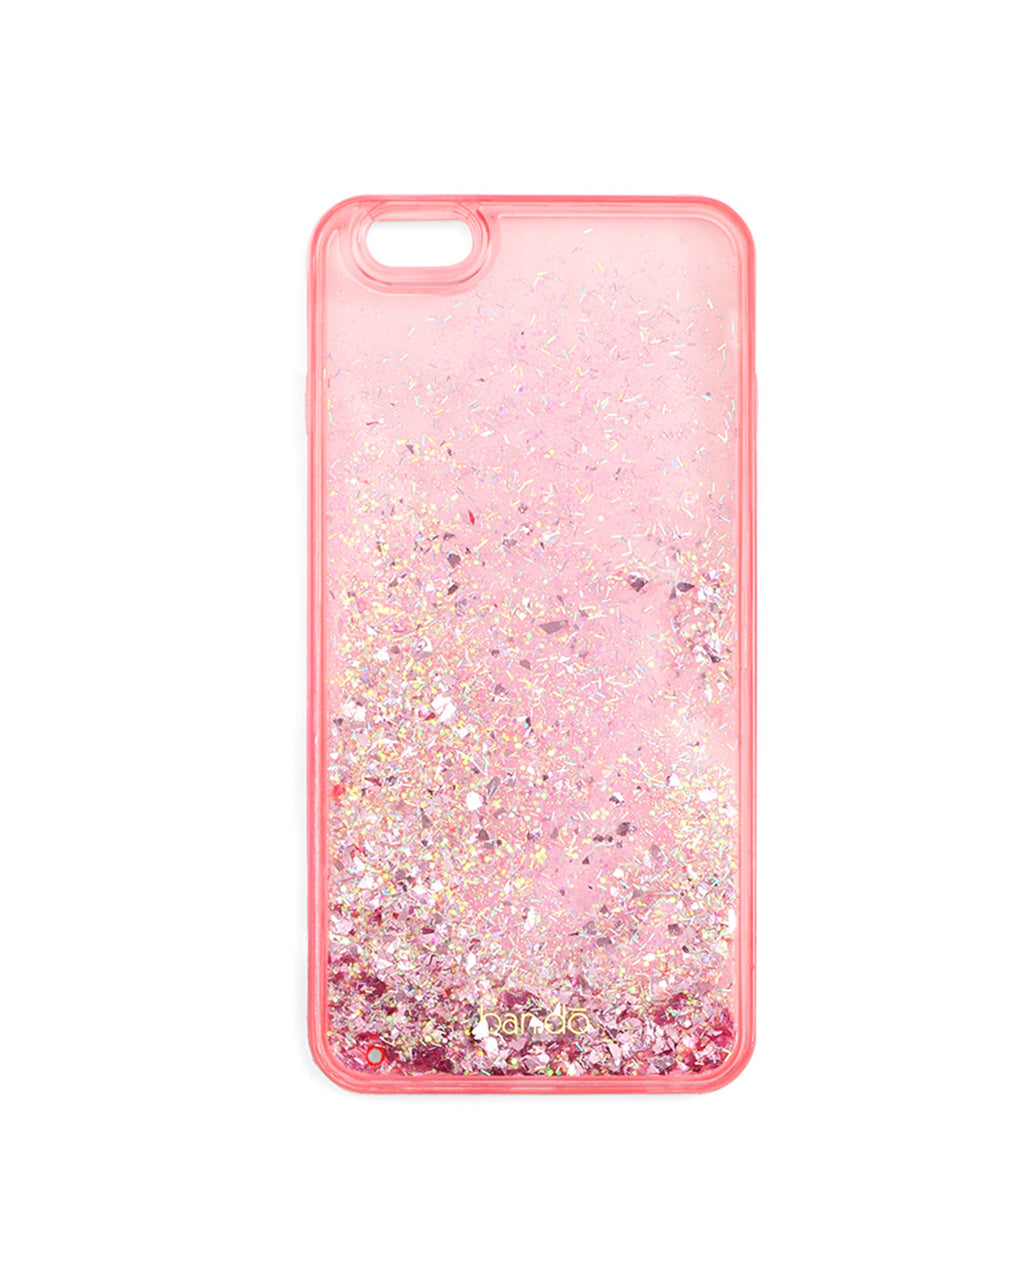 Glitter Bomb Iphone 6 6s Plus Case Pink Stardust By Ban